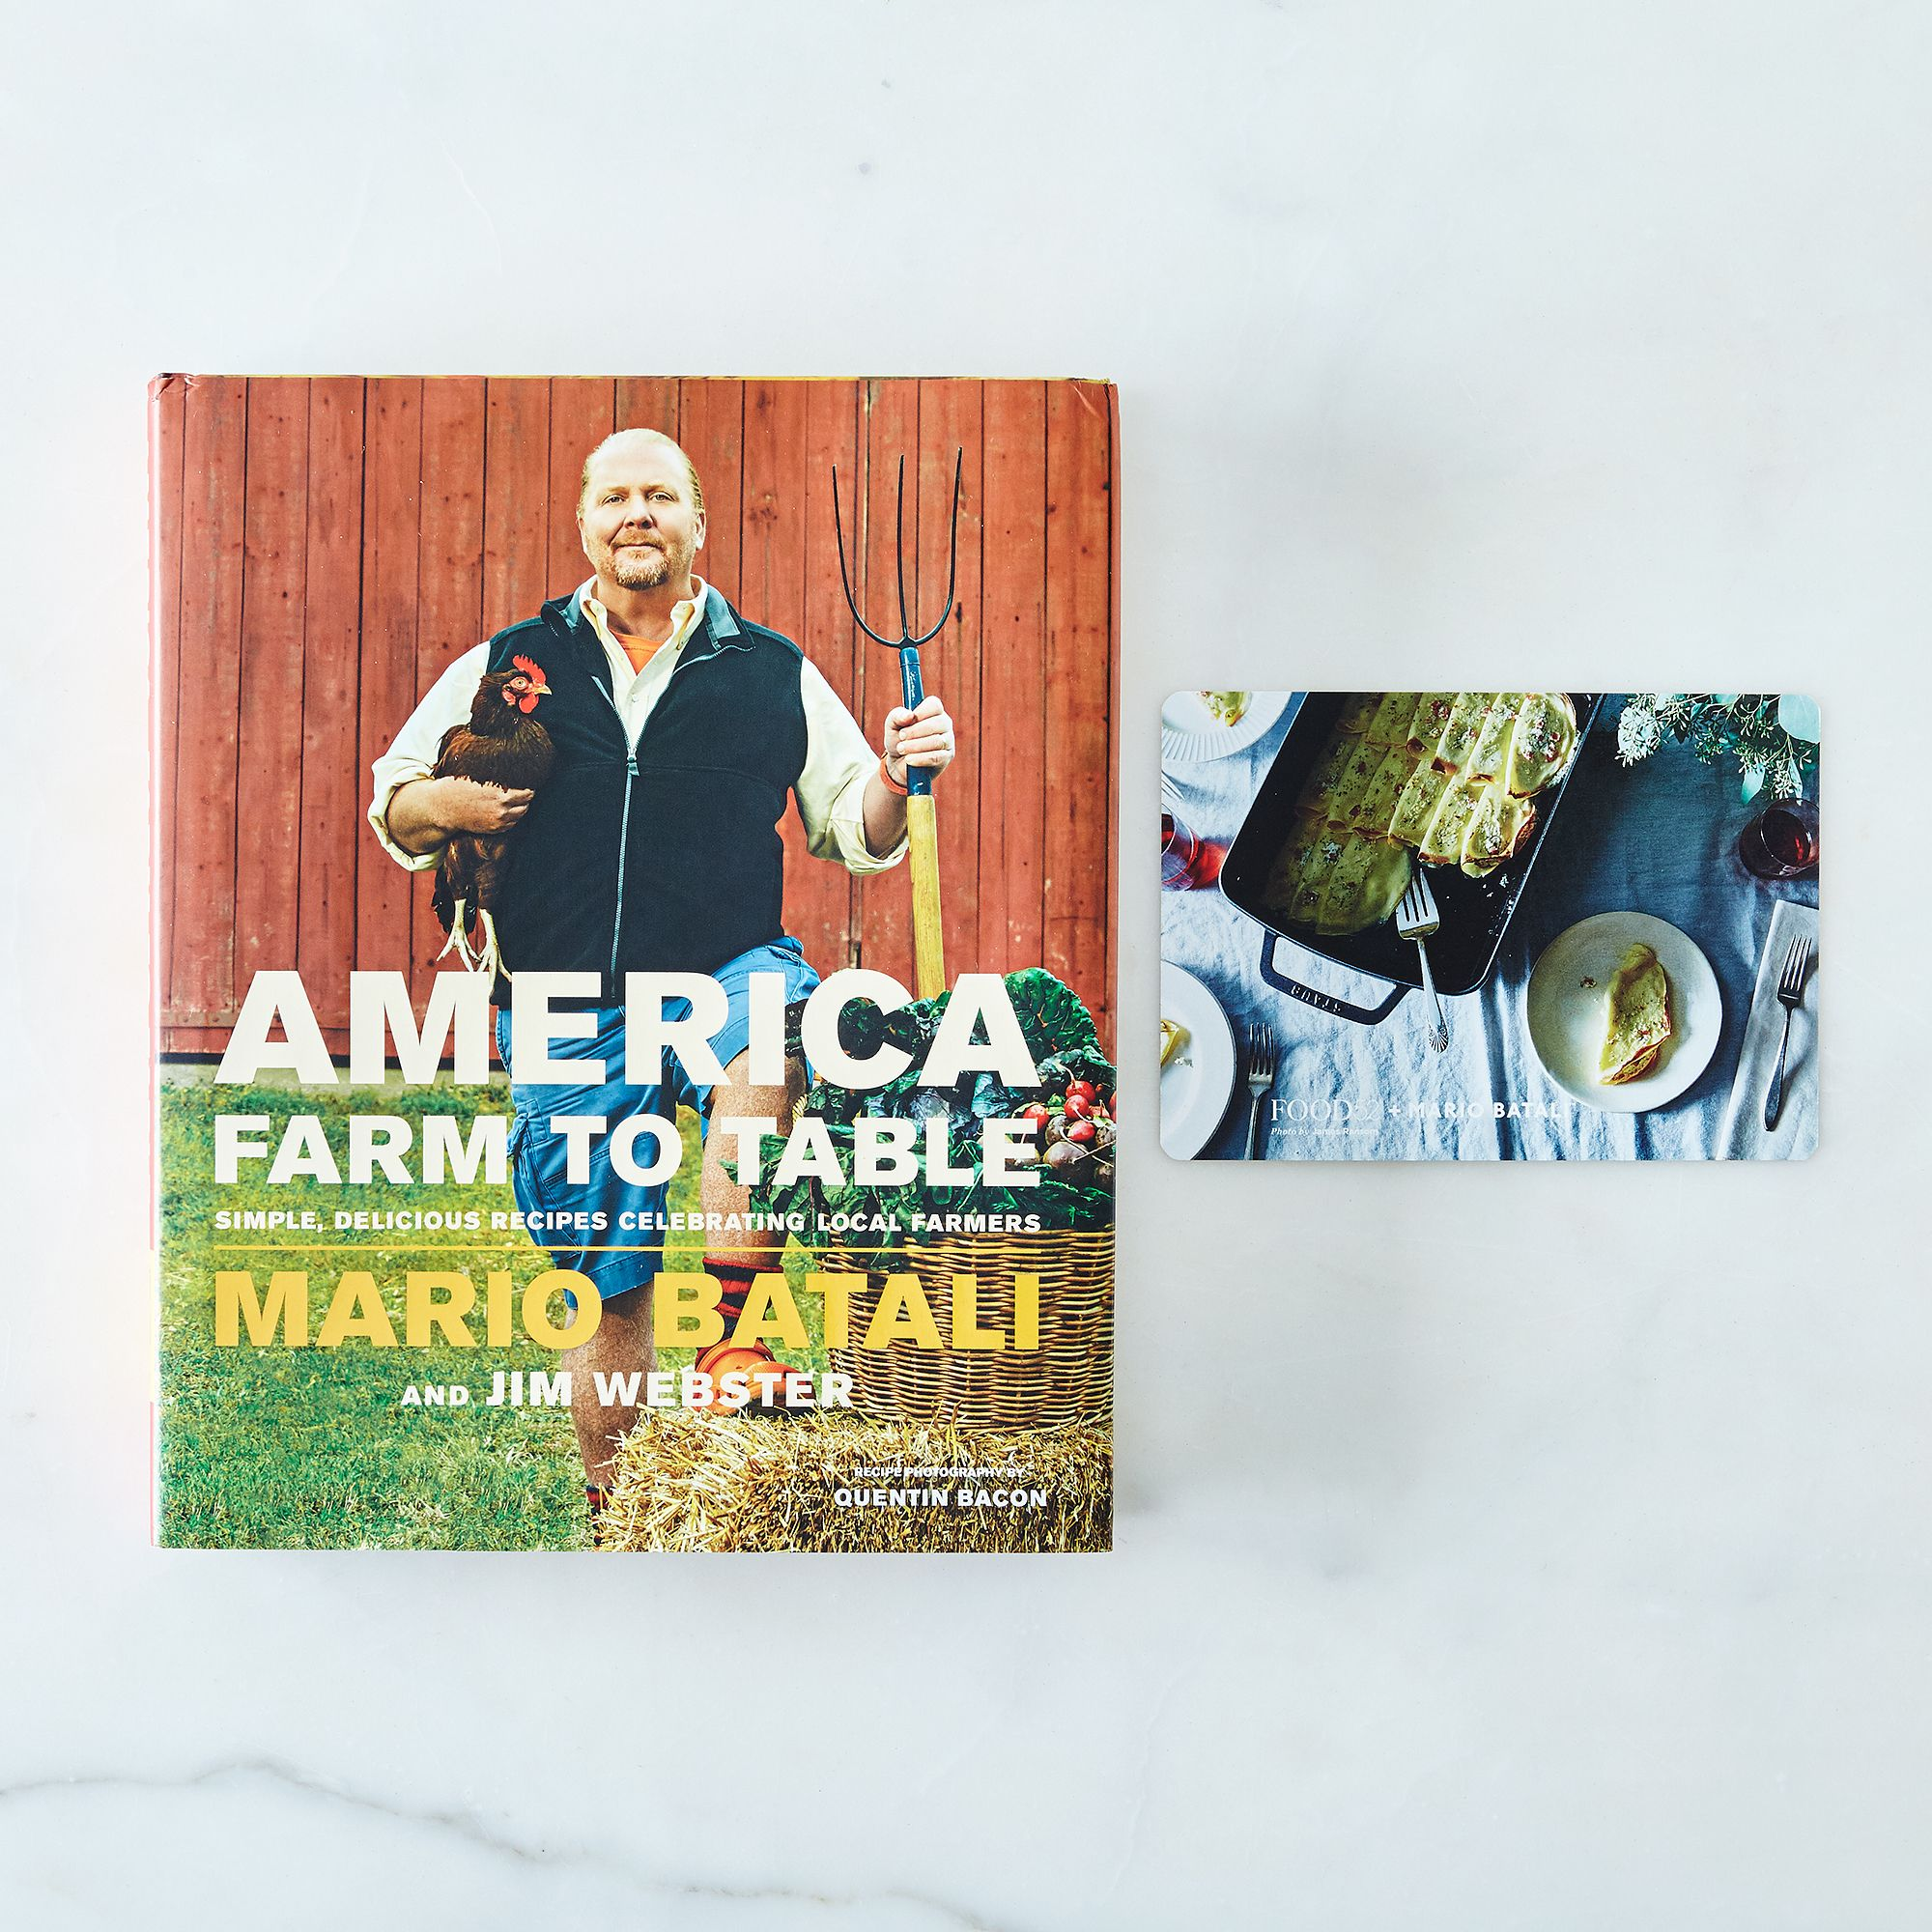 Cc18d247 9e69 4446 b982 24ce6fbc6118  2015 1019 hachette mario batali farm to table holiday recipe card silo rocky luten 016